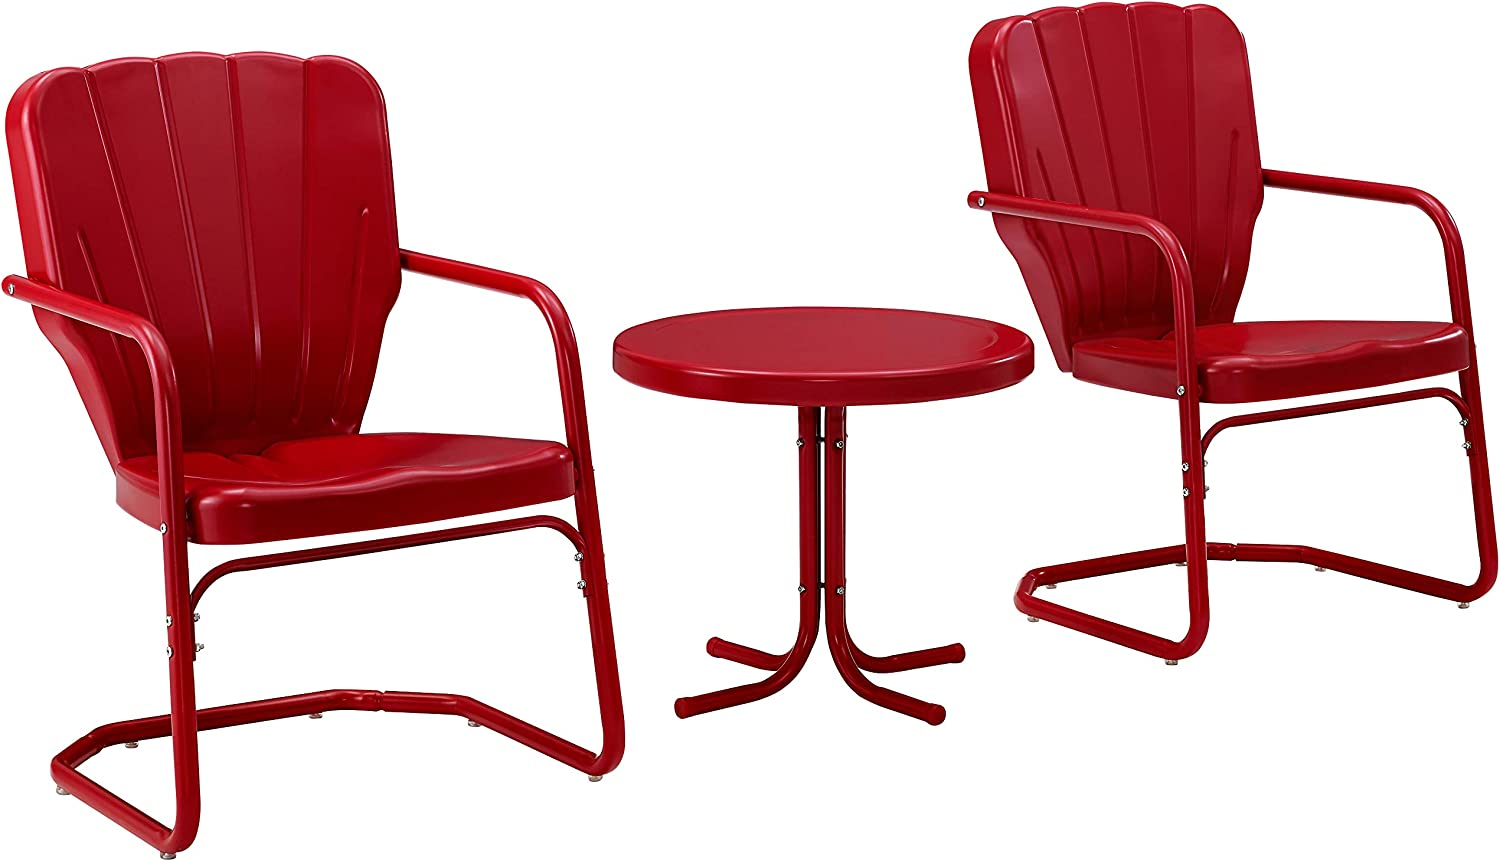 Crosley Furniture KO10012RE Ridgeland Retro Metal 3-Piece Seating Set with 2 Chairs and Side Table, Red